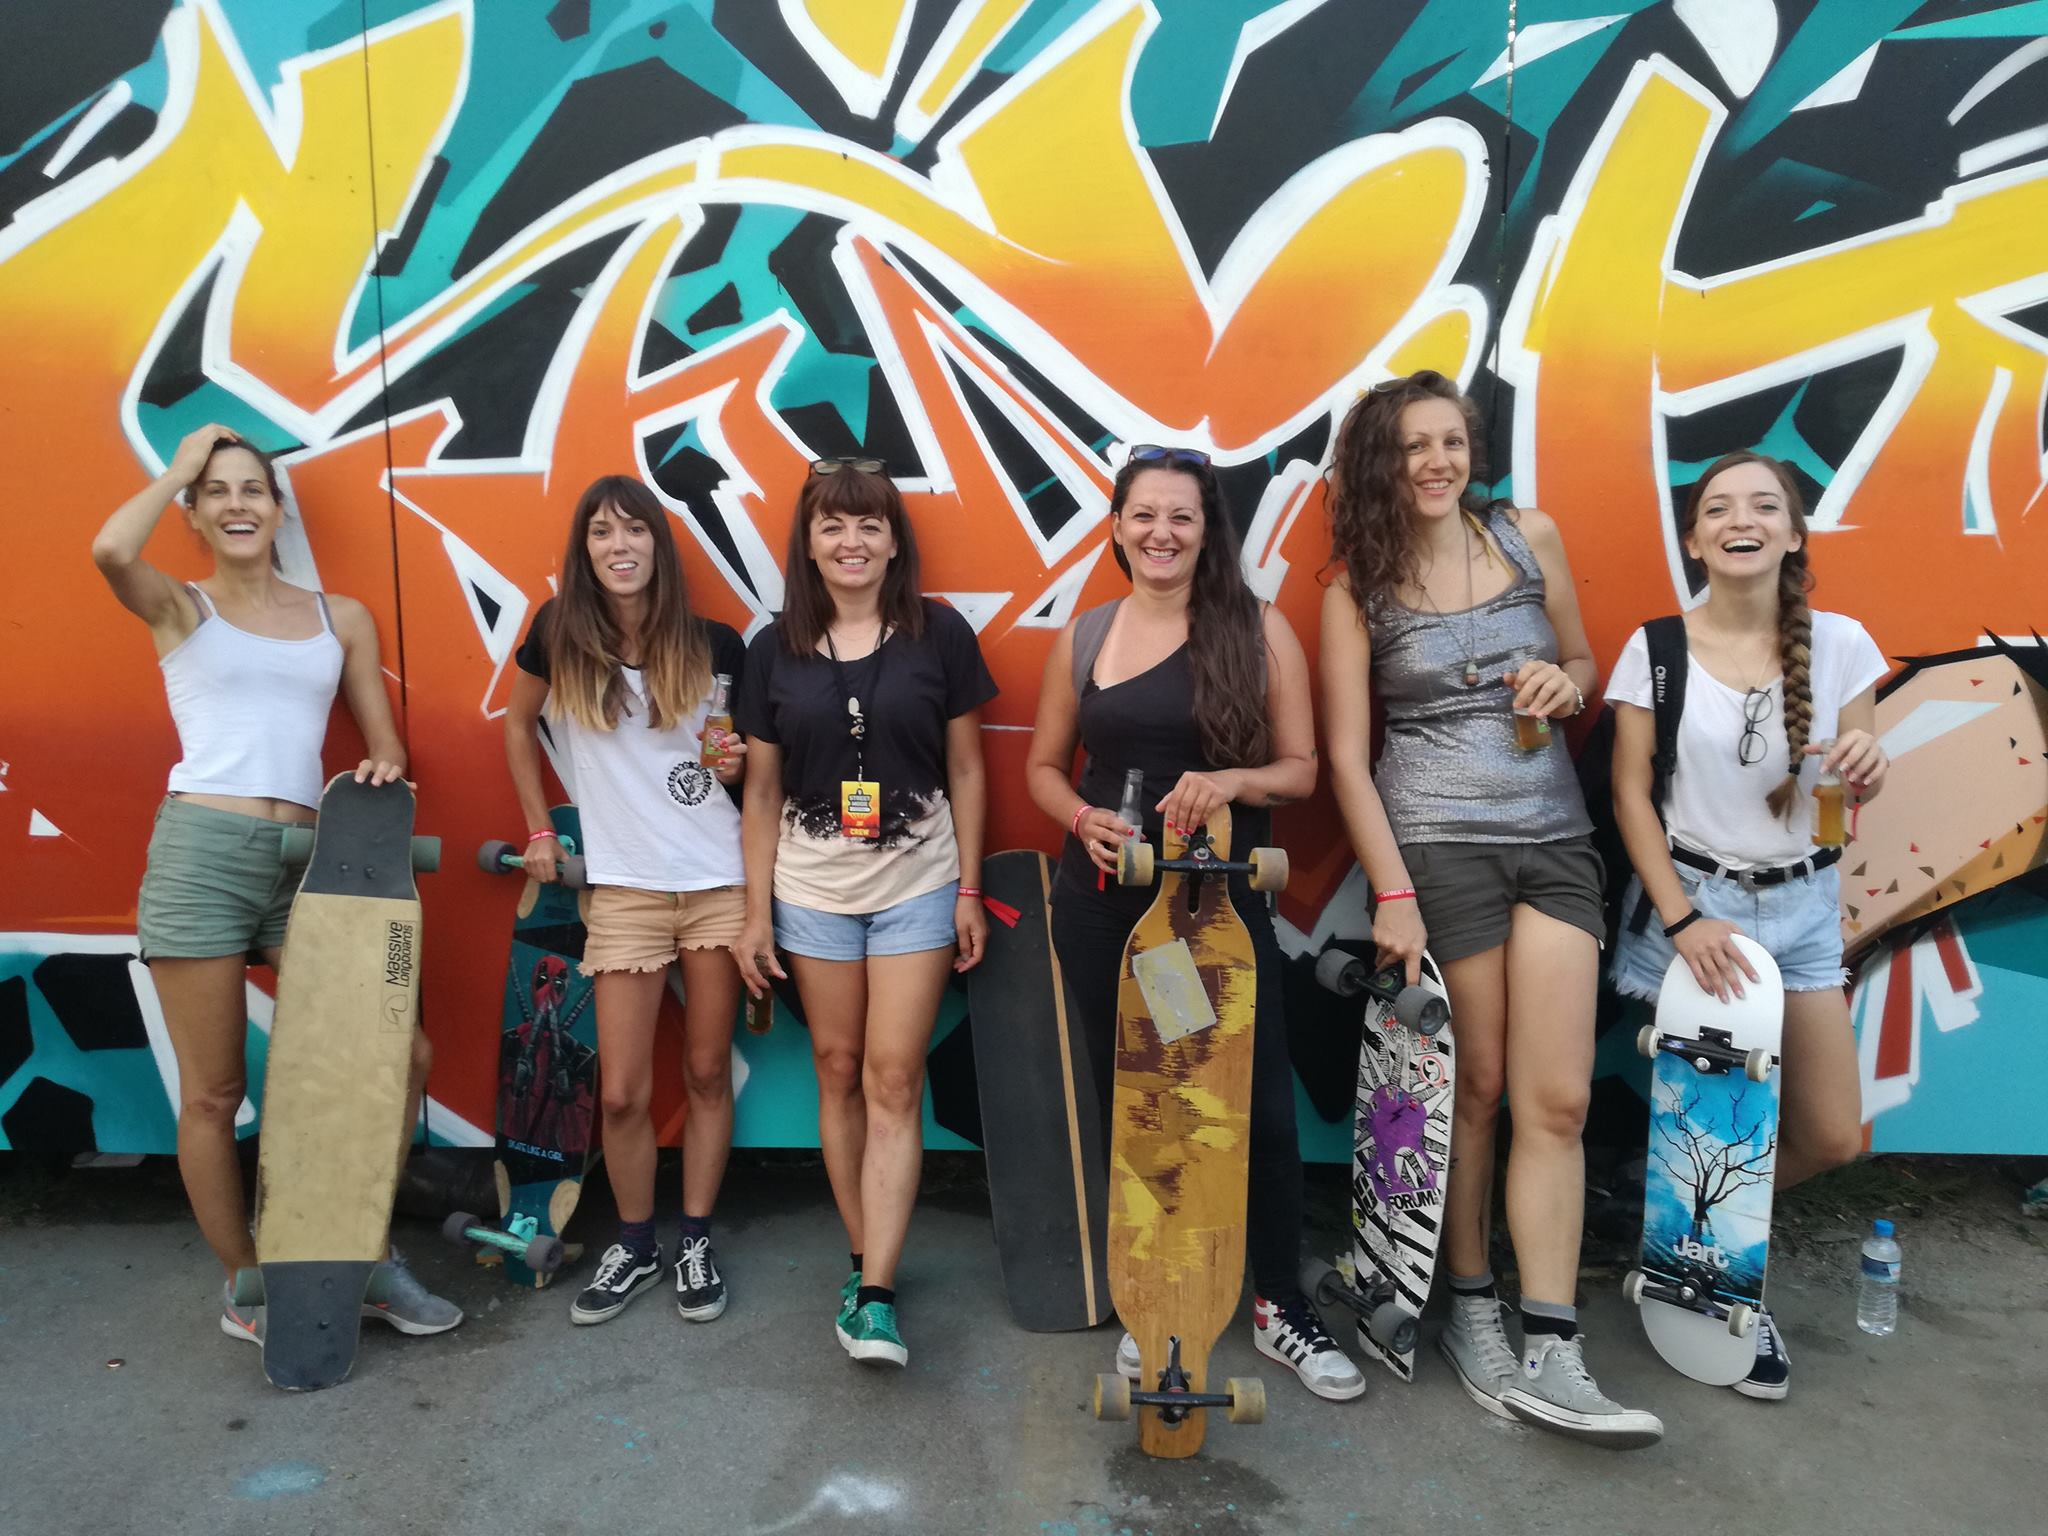 longboard girls crew, longboard, longboarding, skate, skateboarding, cool, rad, strong, awesome, photo, girl, power, sea, summer, amazing photo, nose manual, girls who shred, girls who skate, lgc, friends, fun, skate like a girl, women supporting women, goals, beautiful, action, action sports, sport, women in sport, game changers, ride, female rider, athlete, girl boss, lean in, women unite, equality, balance, gender, gender equality, board, boards, sun, longboard girl, longboard girls, boards, skater girl, skater girls, fashion, love, freeride, downhill, dancing, friendship, friends, be the change, work for change, greece, longboard girls crew greece, longboard girl greece, freestyle, freeride, downhill, slalom, maria Eleftheriadou